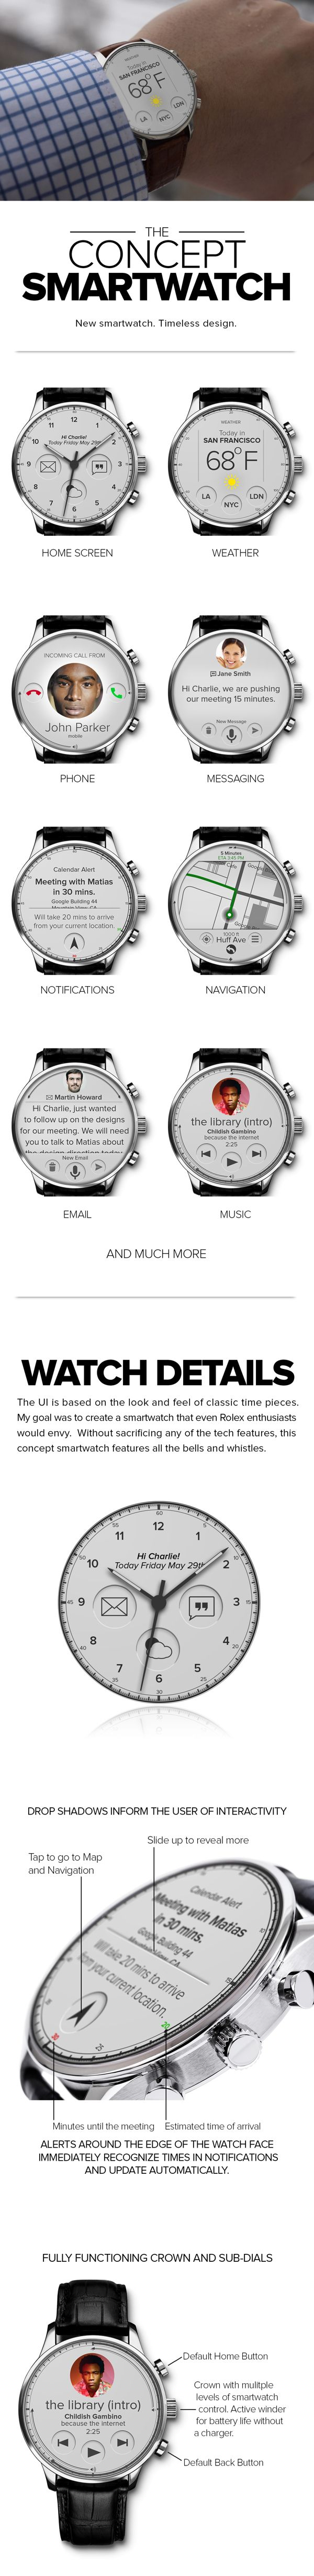 CONCEPT SMARTWATCH by Charlie No, via Behance, I love the concept and thought that has gone into this, bring an icon look into the future.